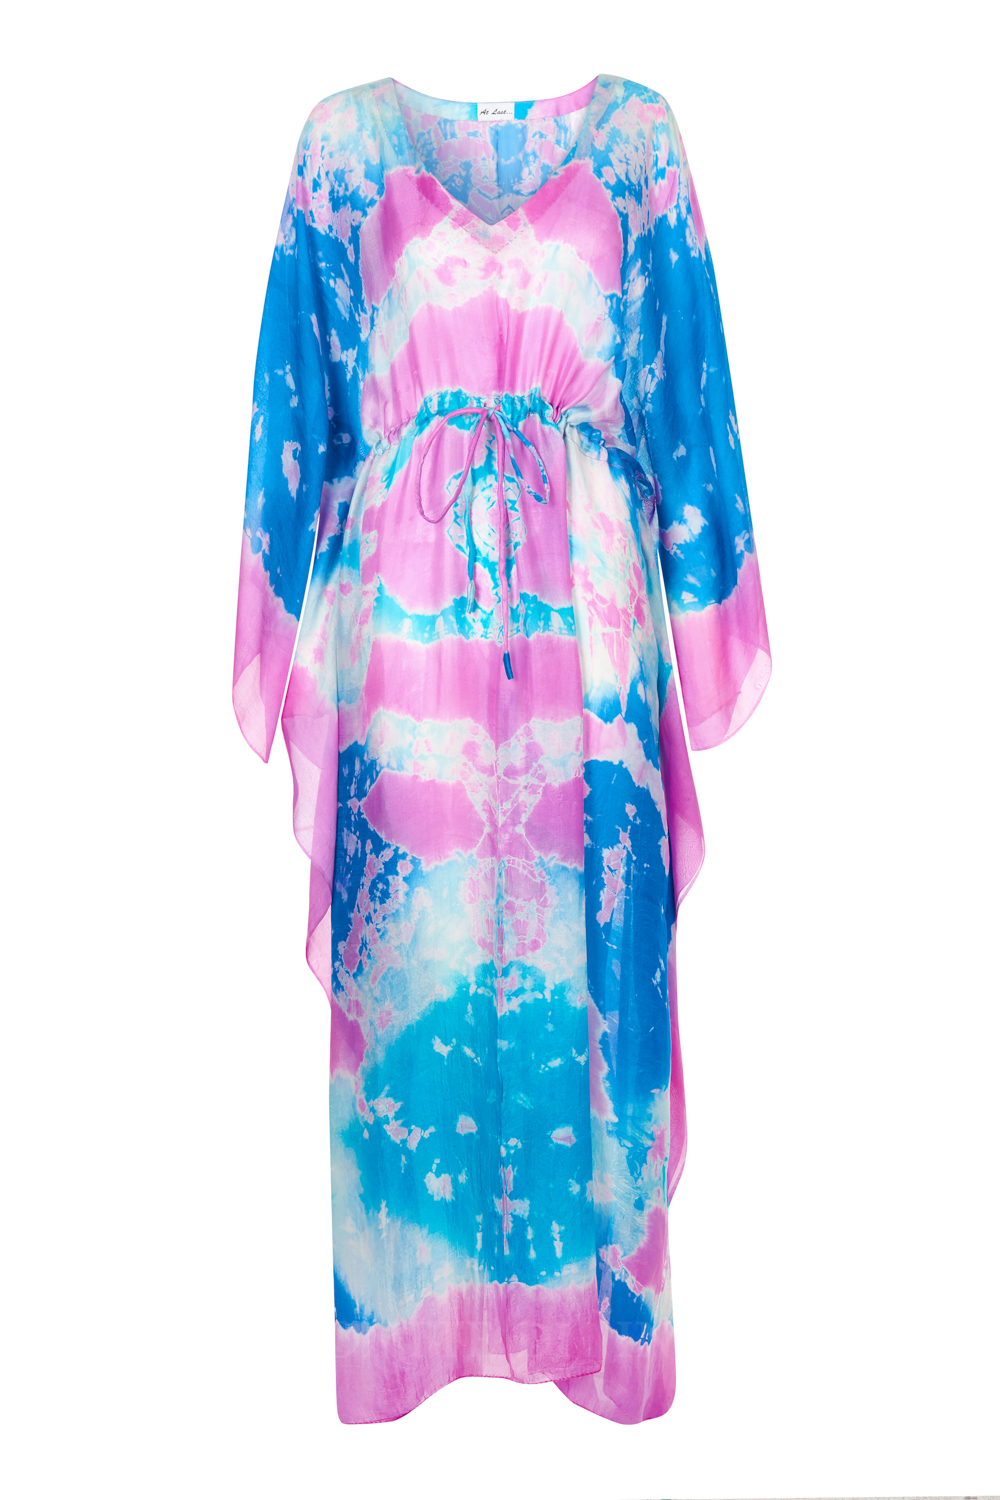 At Last Bella Silk Kaftan - Turquoise and Pink